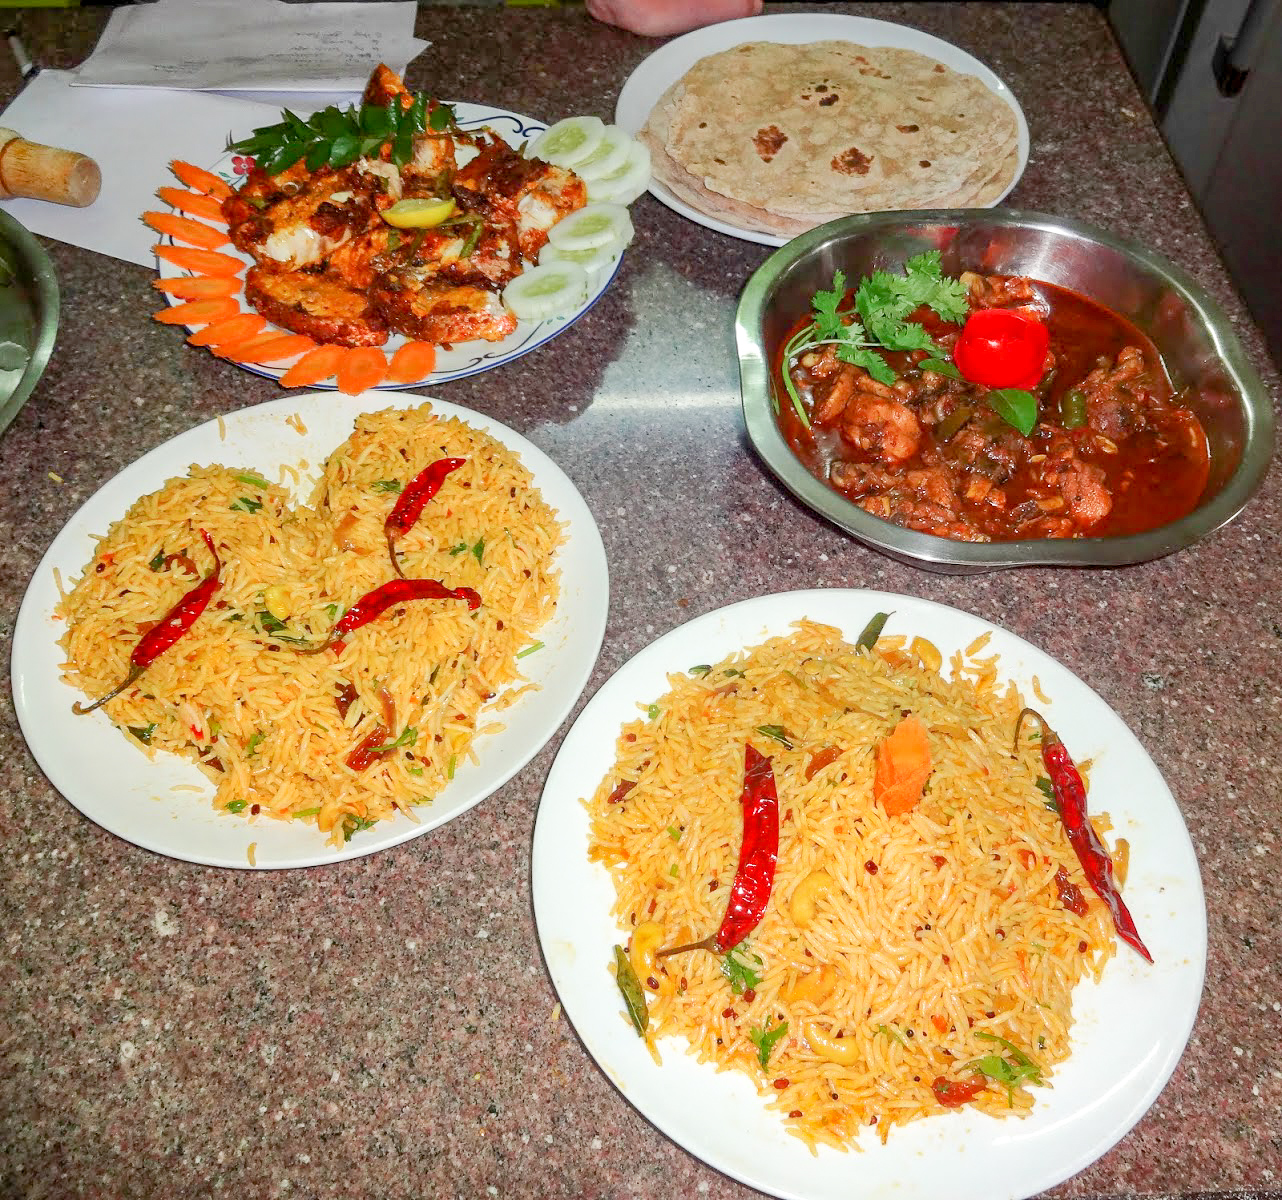 2 plates of cashew and red chilli rice, a plate of chicken chunks surrounded by carrot and cucumber slices, chicken curry in a dish with corriander leaves and a plate of chapati at Khan's Cooking Class, Varkala, India